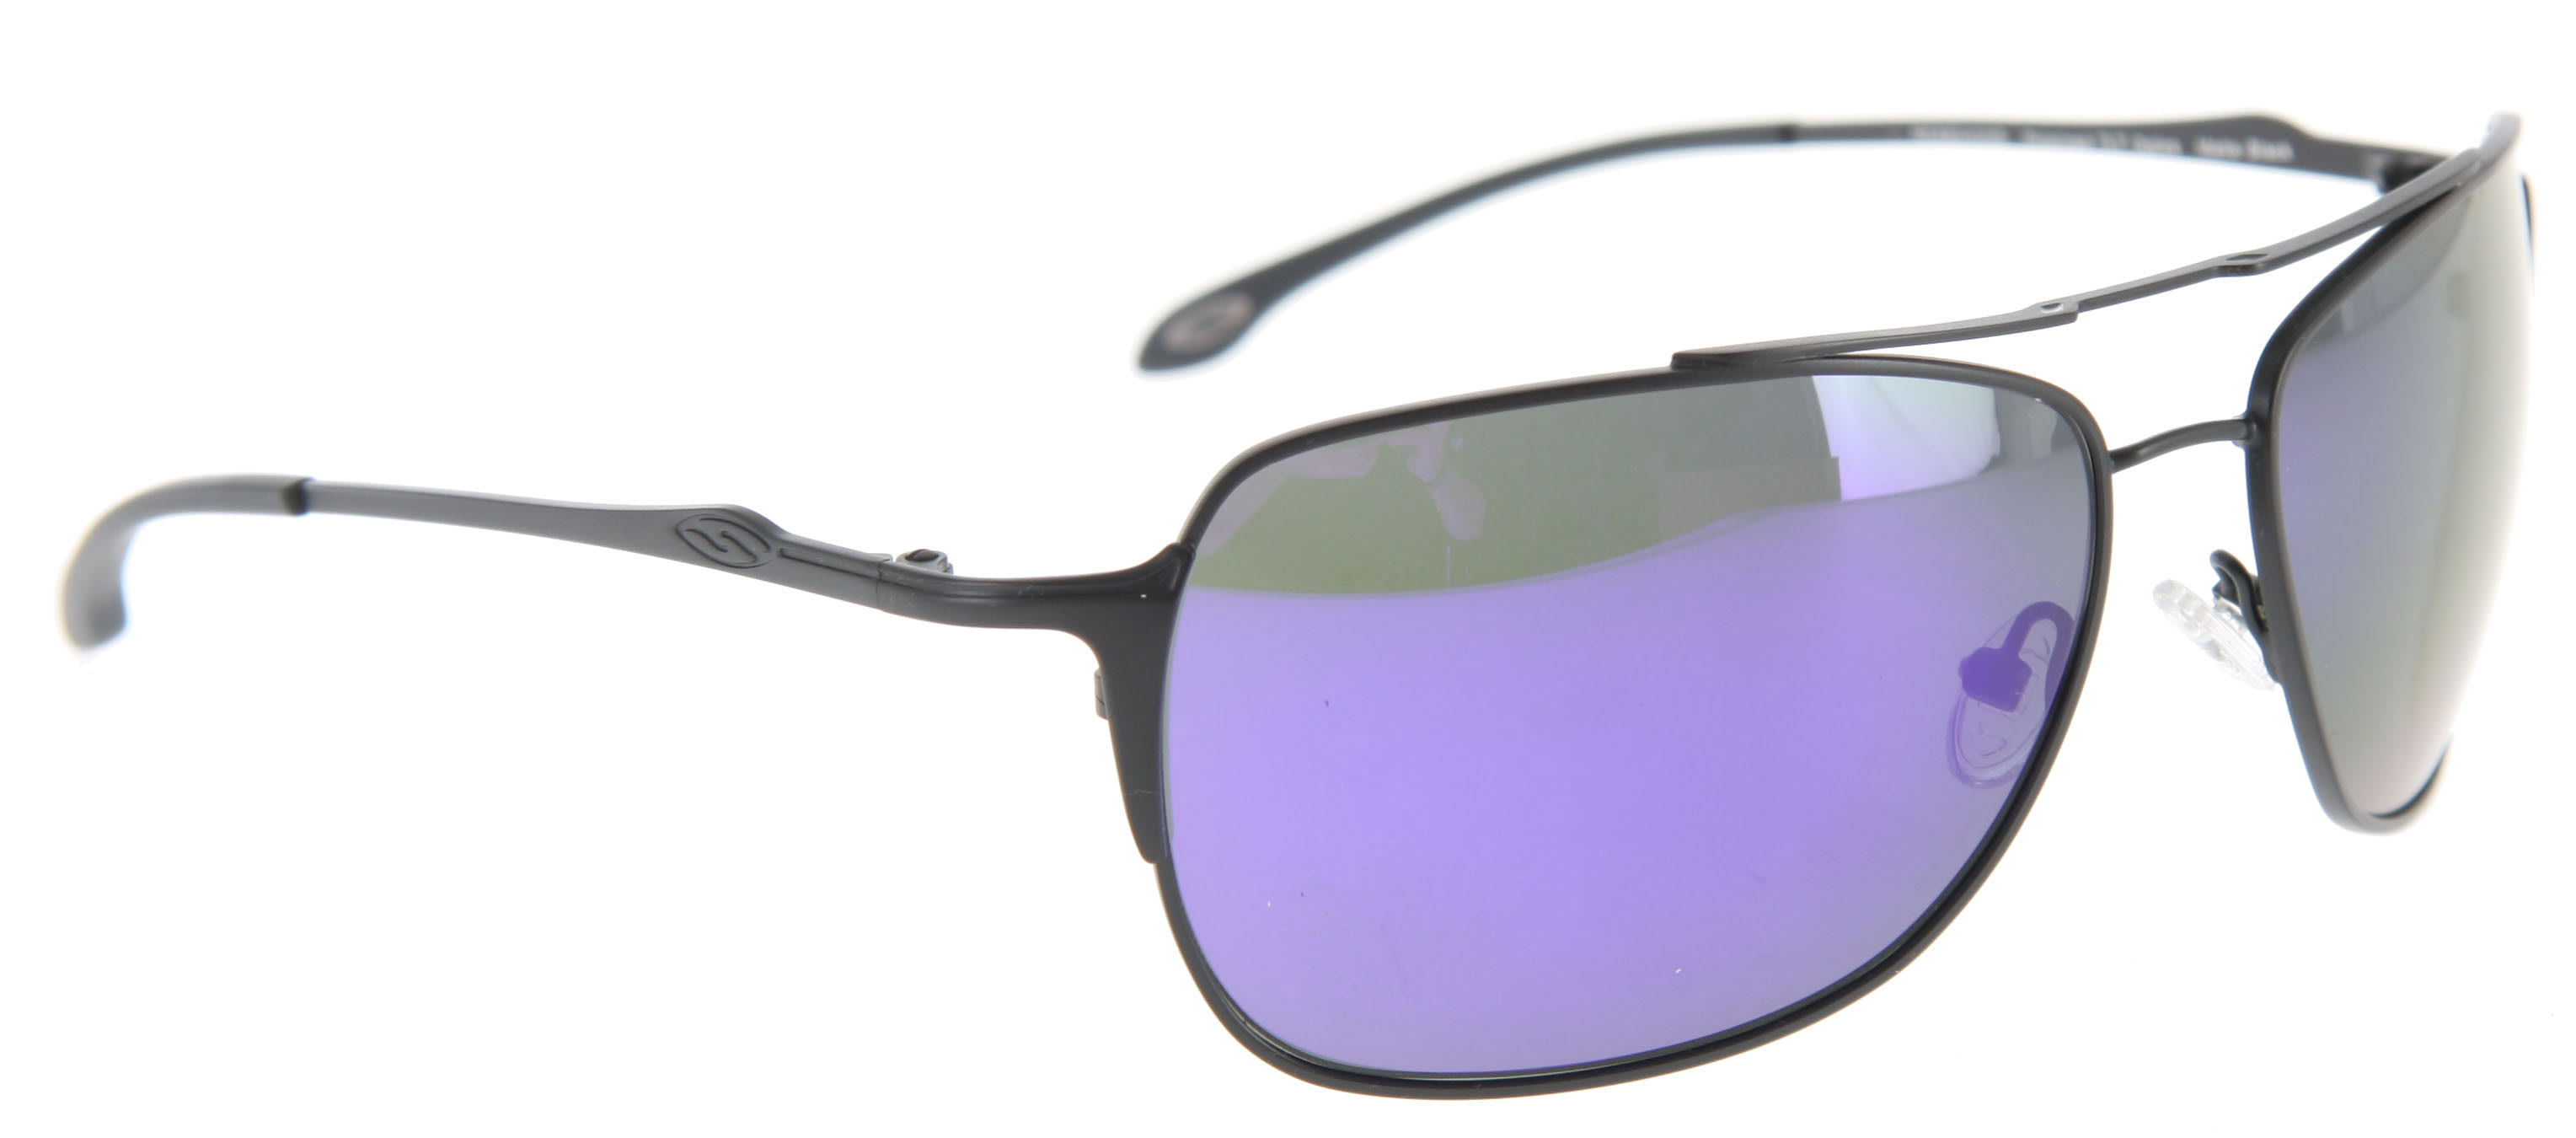 Shop for Smith Rosewood Sunglasses Matte Black/Polarized Deep Purple Mirror Lens - Men's